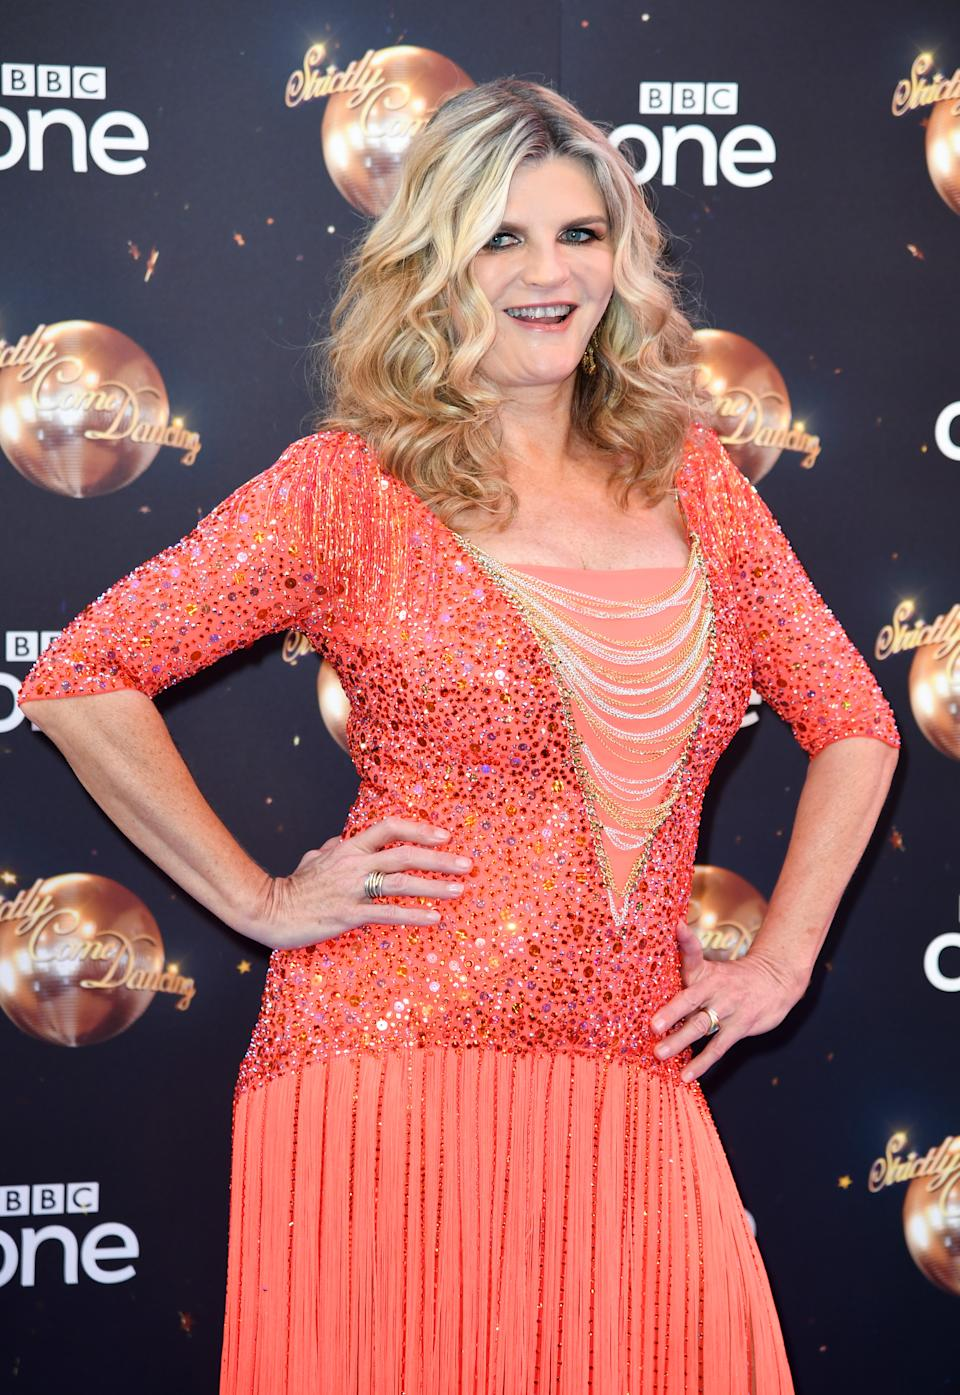 Susannah Constantine arriving at the red carpet launch of Strictly Come Dancing 2018, BBC Broadcasting House, London. Photo credit should read: Doug Peters/EMPICS